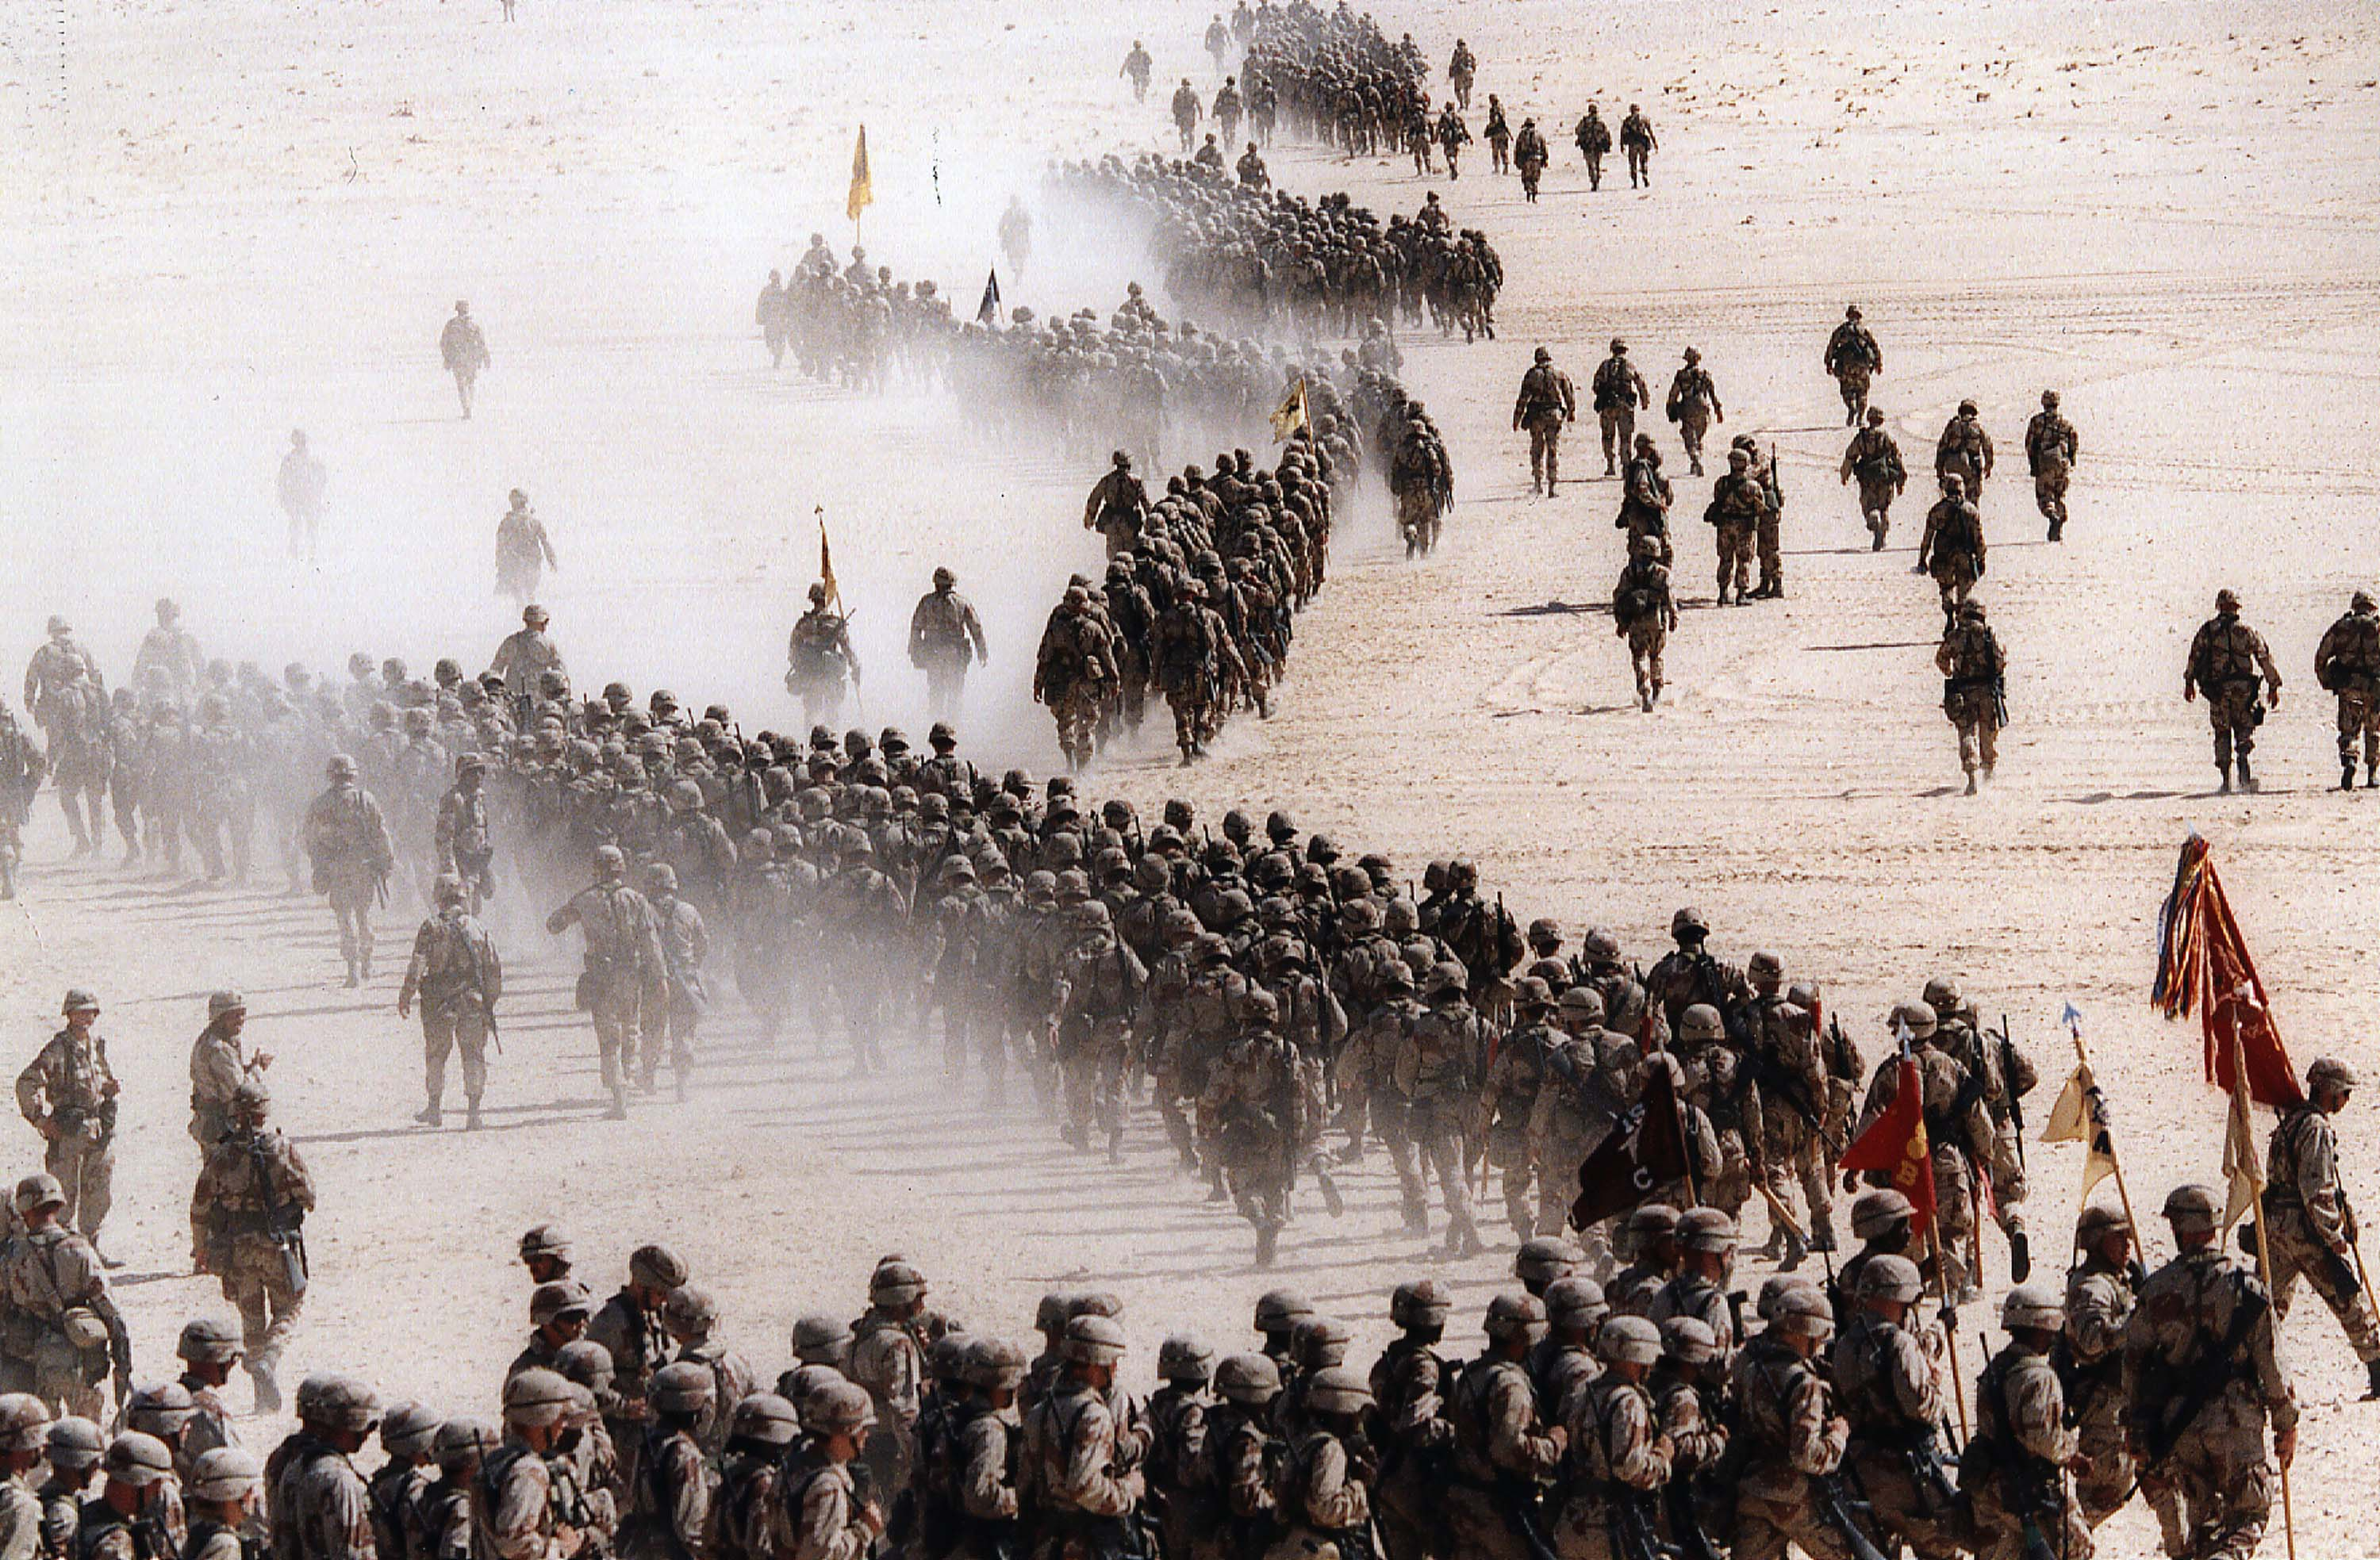 Responding to Iraq's invasion of Kuwait, troops of the U.S. 1st Cavalry Division deploy across the Saudi desert Nov. 4, 1990 AP